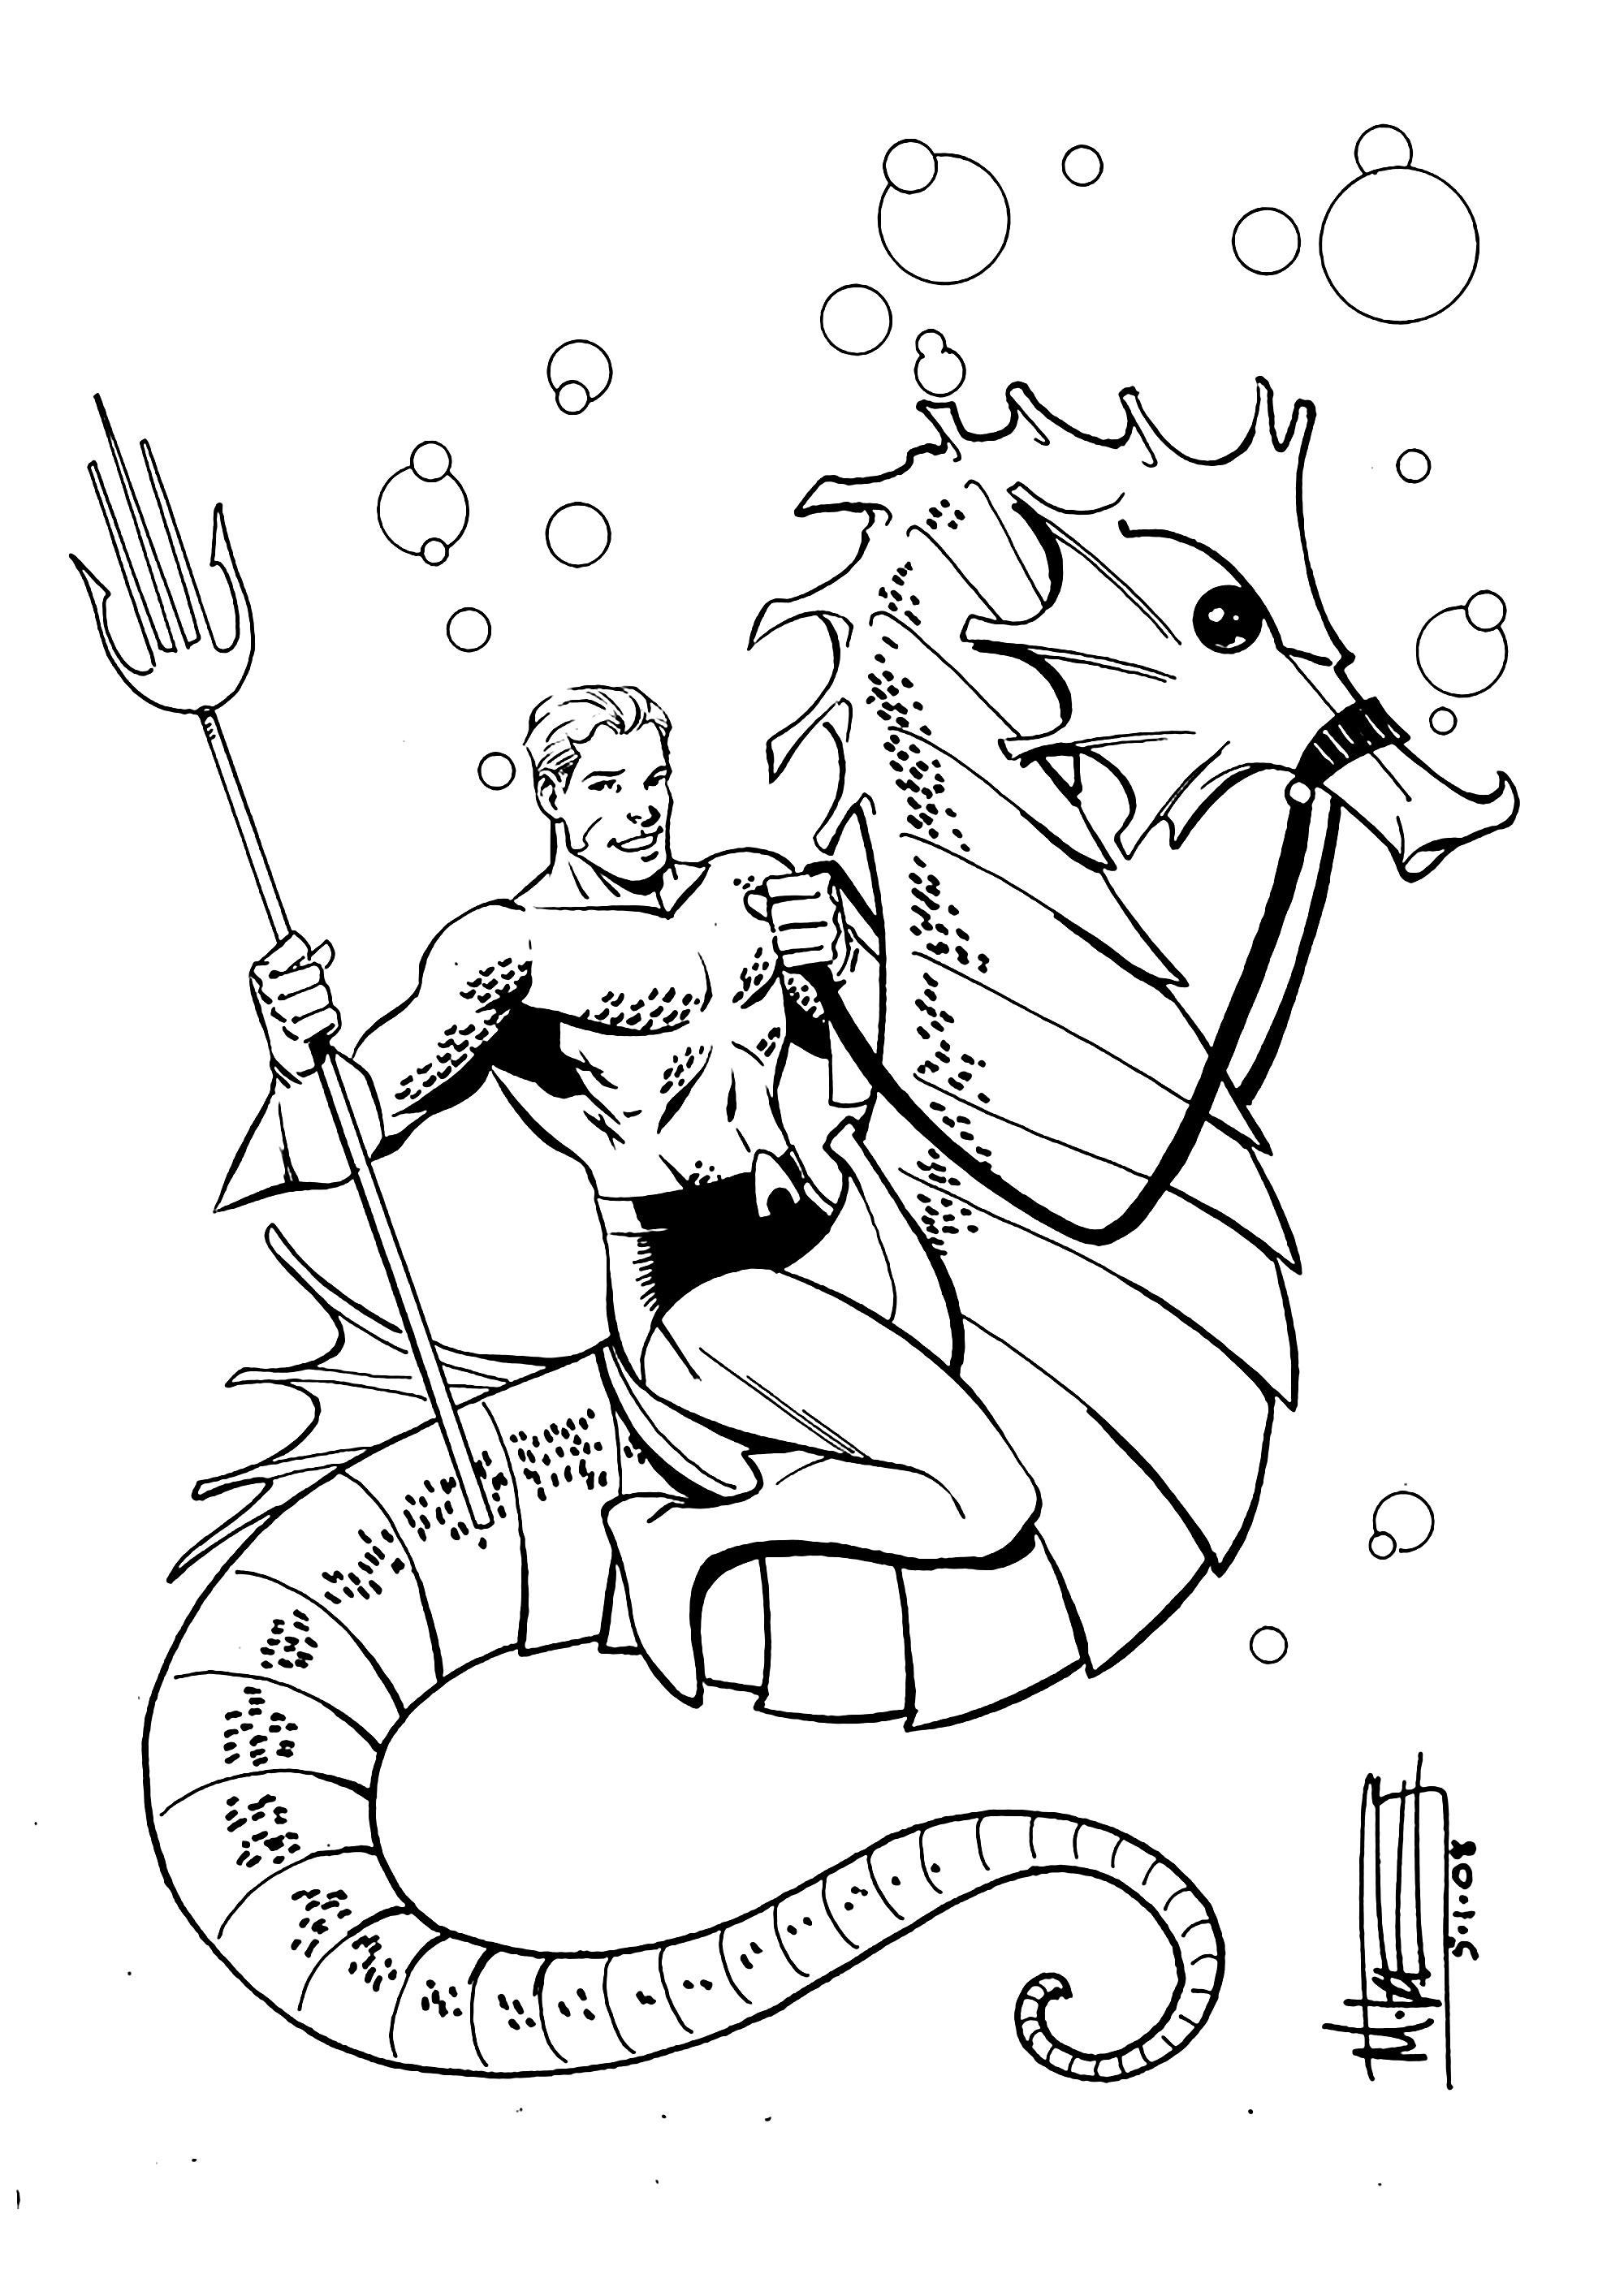 Free Aquaman coloring page to download, for children